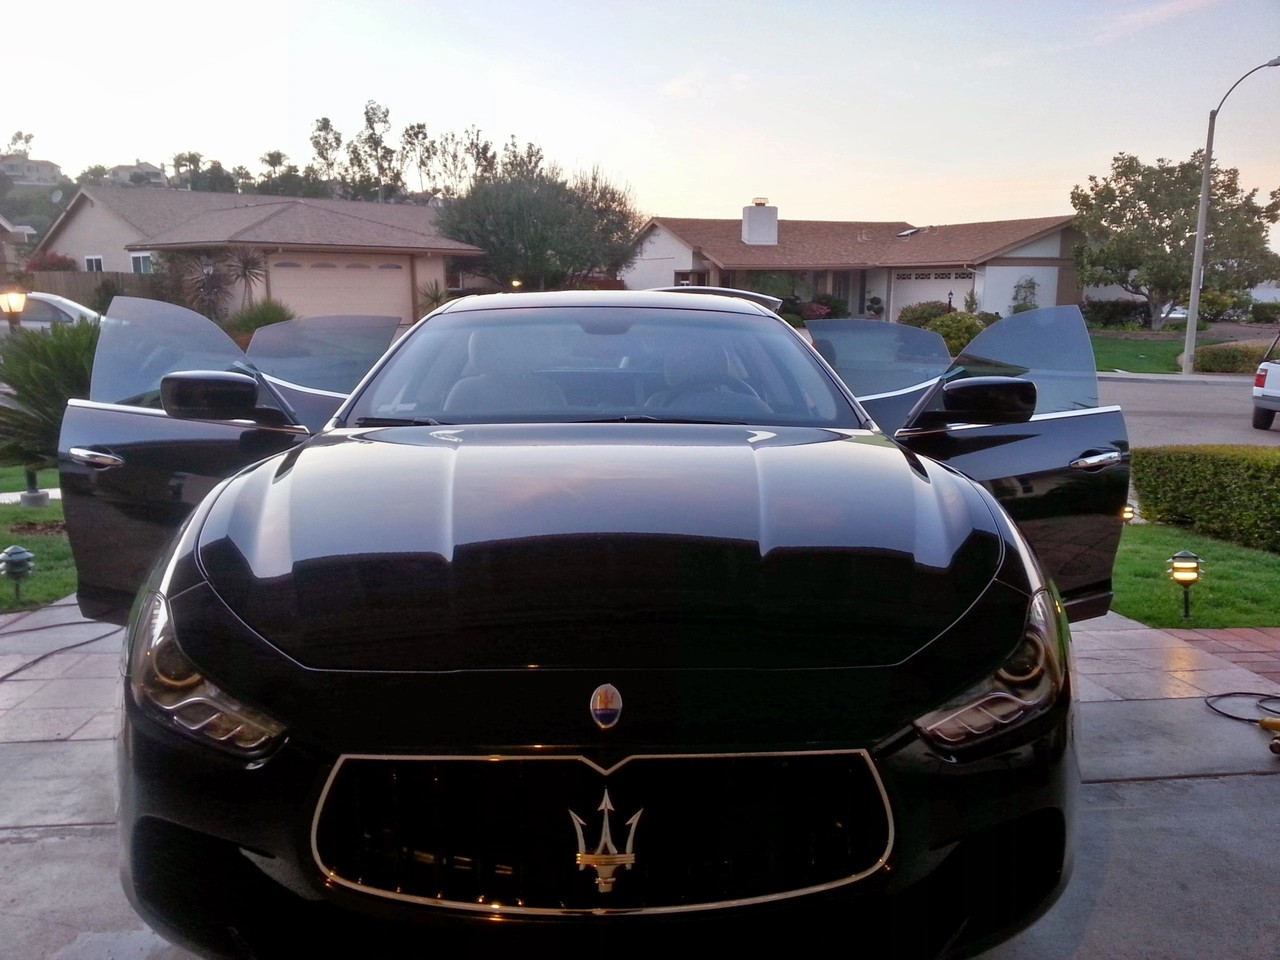 Photo uploaded by All American Window Tinting Socal